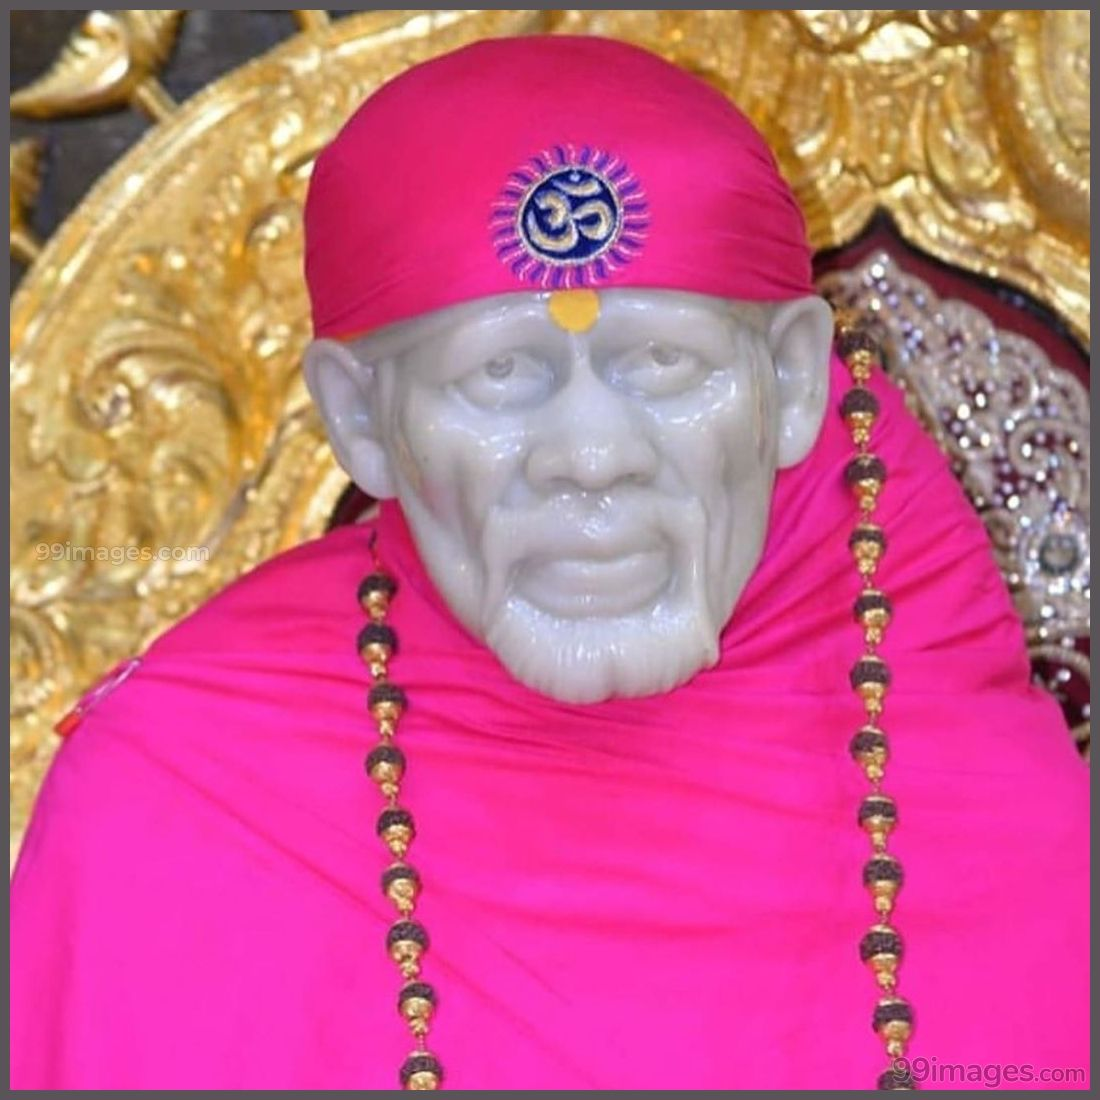 Sai Baba Hd Images For Android Iphone Mobile Hd Wallpapers 1080p 18980 Saibaba Saibaba Sai Baba Hd Wallpaper Sai Baba Wallpapers Hd Wallpapers 1080p